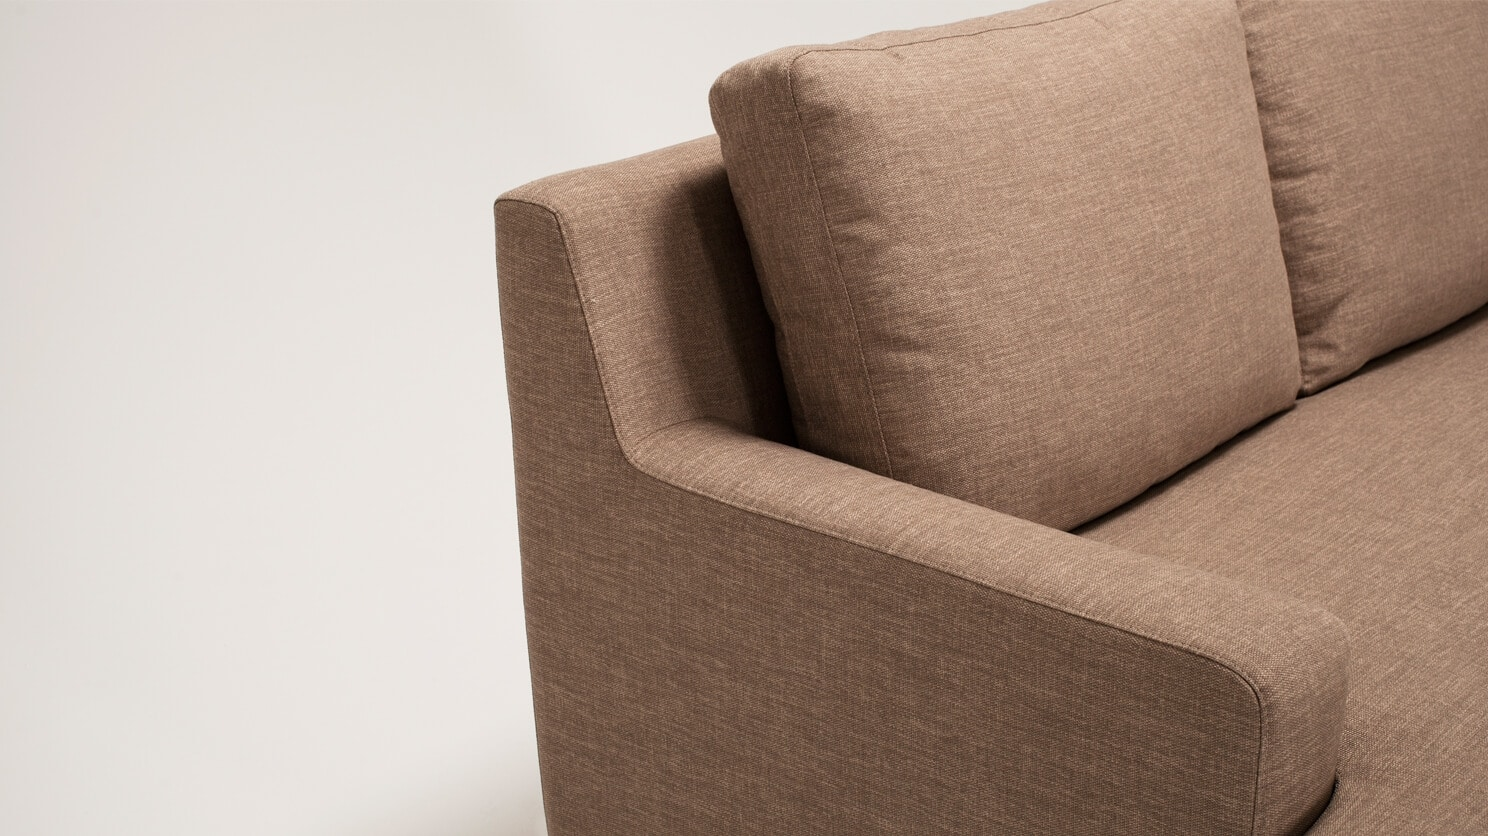 30113 03 04 loveseat blanche key largo pumice detailed view